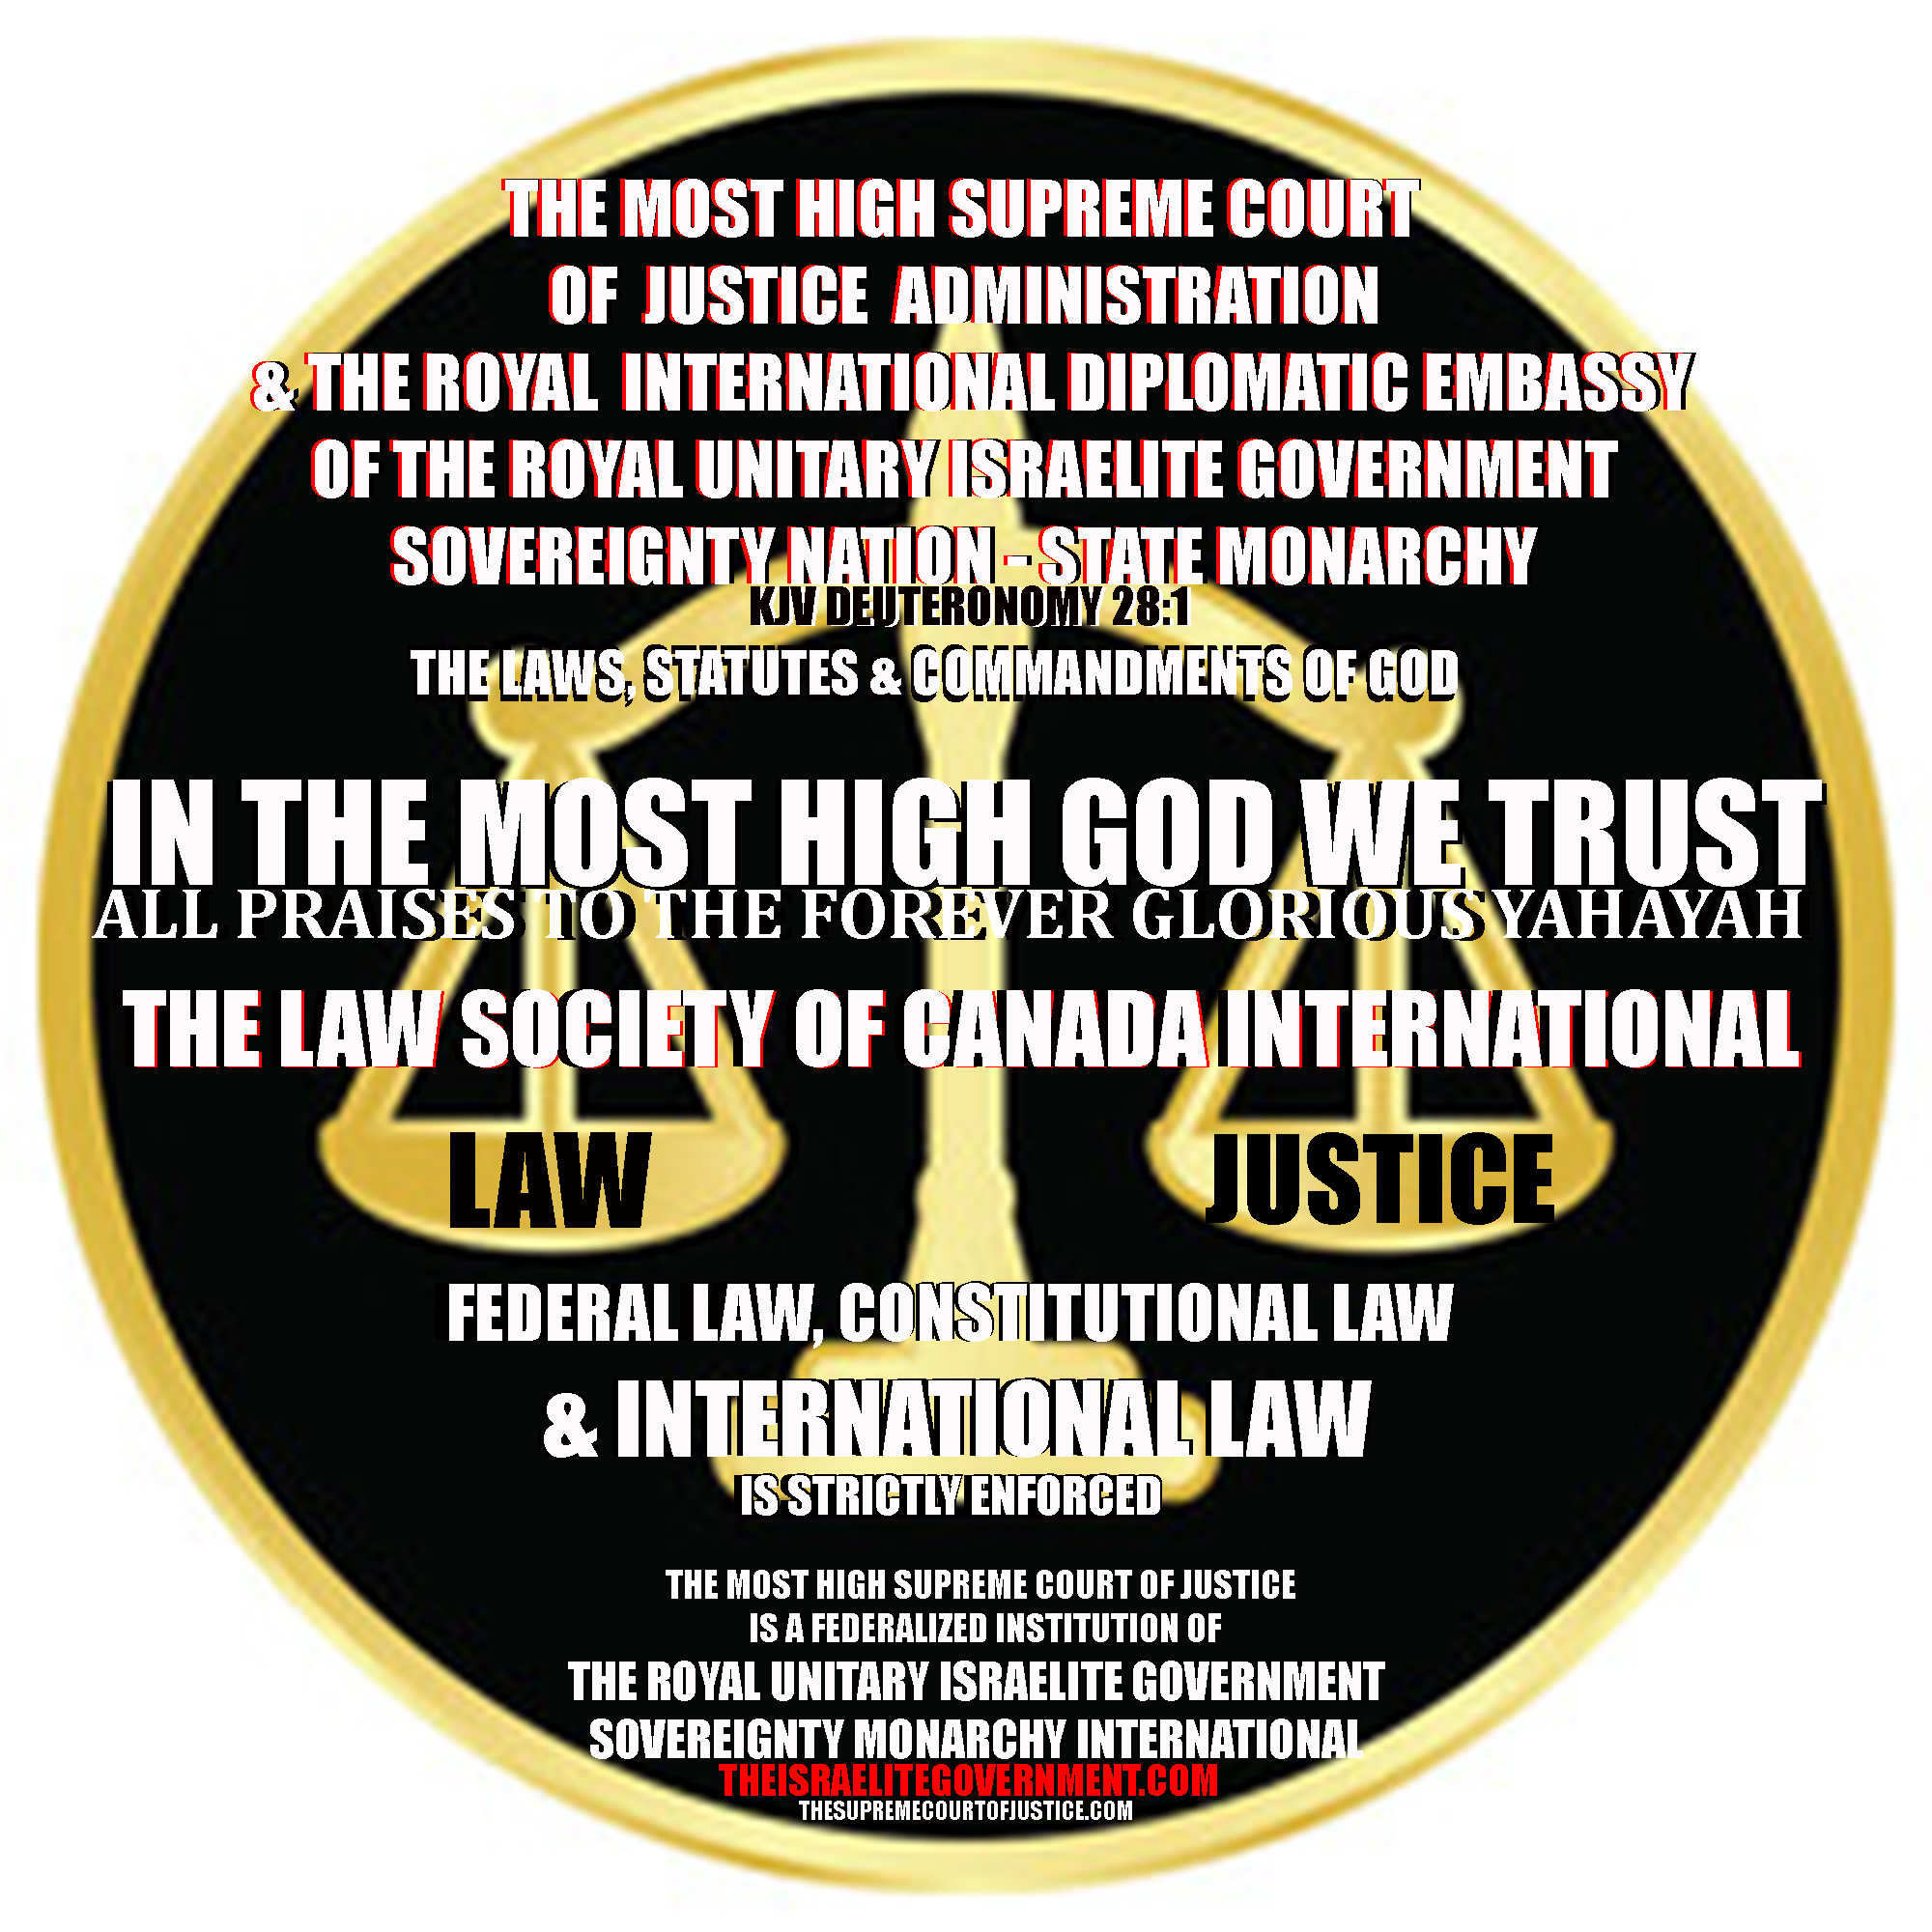 THE ROYAL INTERNATIONAL UNITED ISRAELITE GOVERNMENT SOVEREIGNTY NATION-STATE KINGDOM MONARCHY & THE SUPREME COURT OF JUSTICE ADMINISTRATION AUTHORITY OVER THE ROYAL LAW SOCIETY & THE IGS DIPLOMATIC EMBASSY OF CANADA